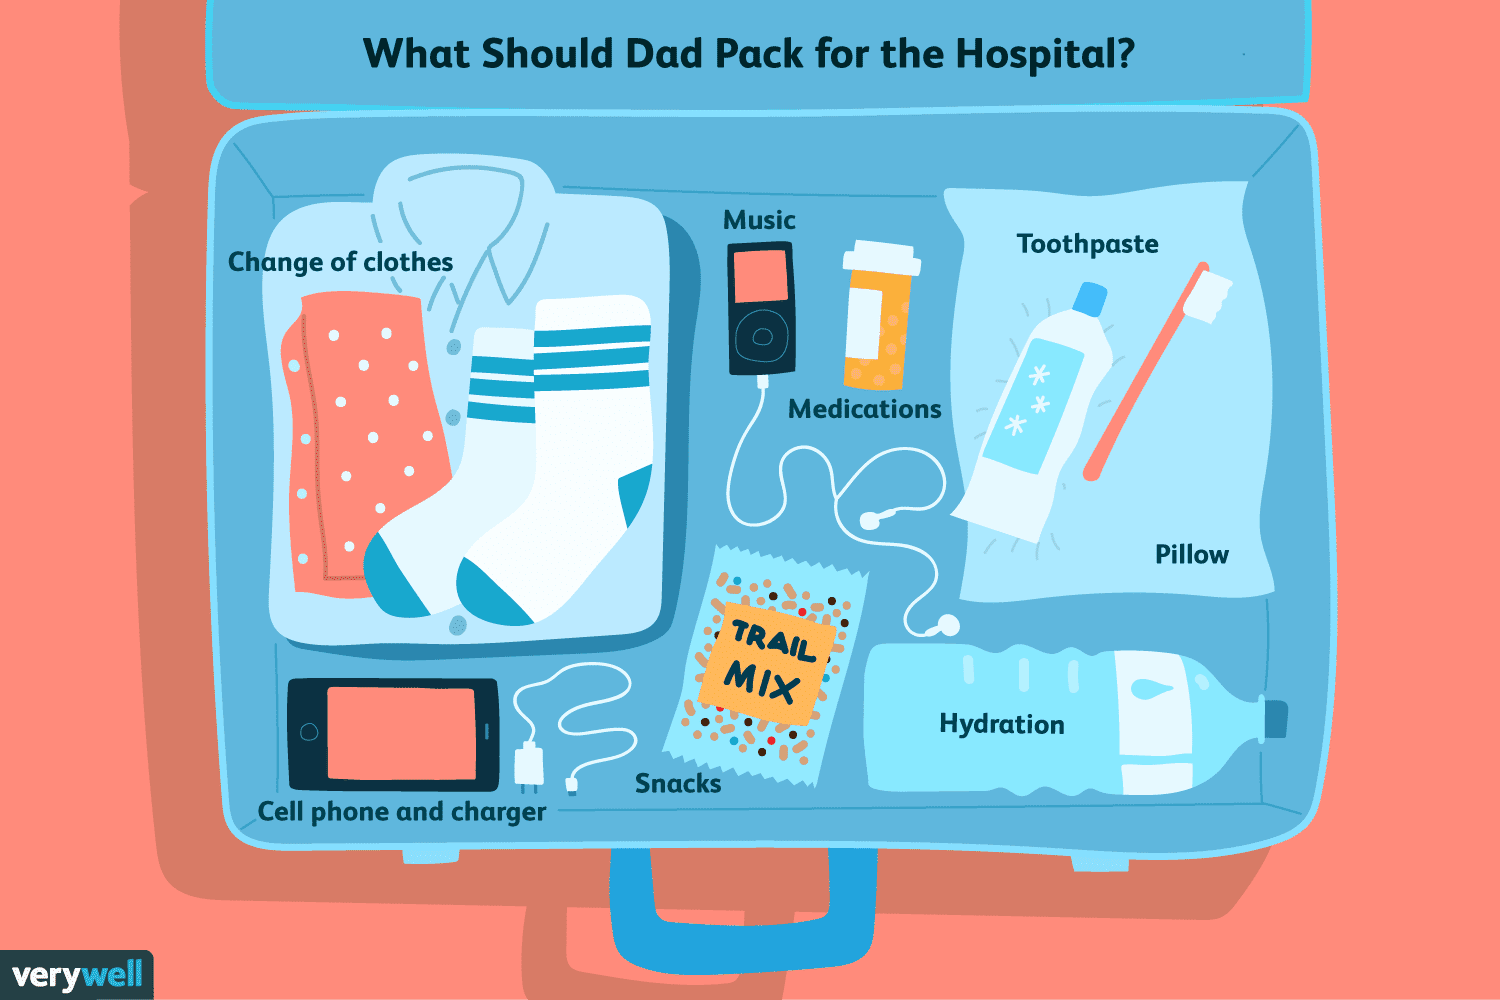 How Should Dad Pack For The Hospital